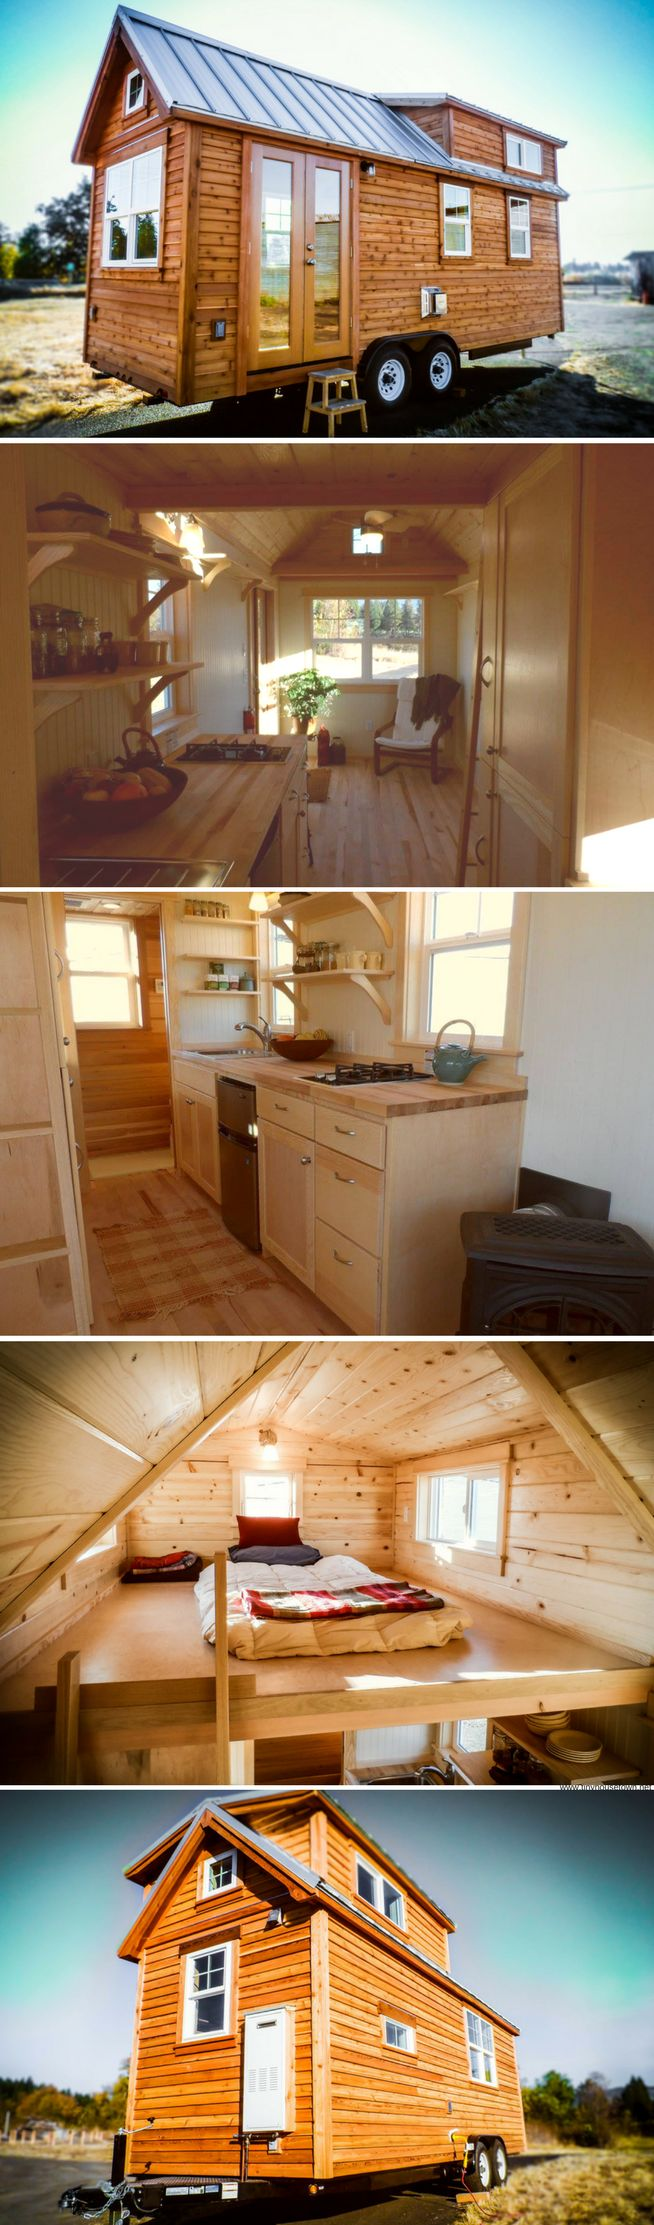 The Paytte tiny house from TruForm Tiny Homes